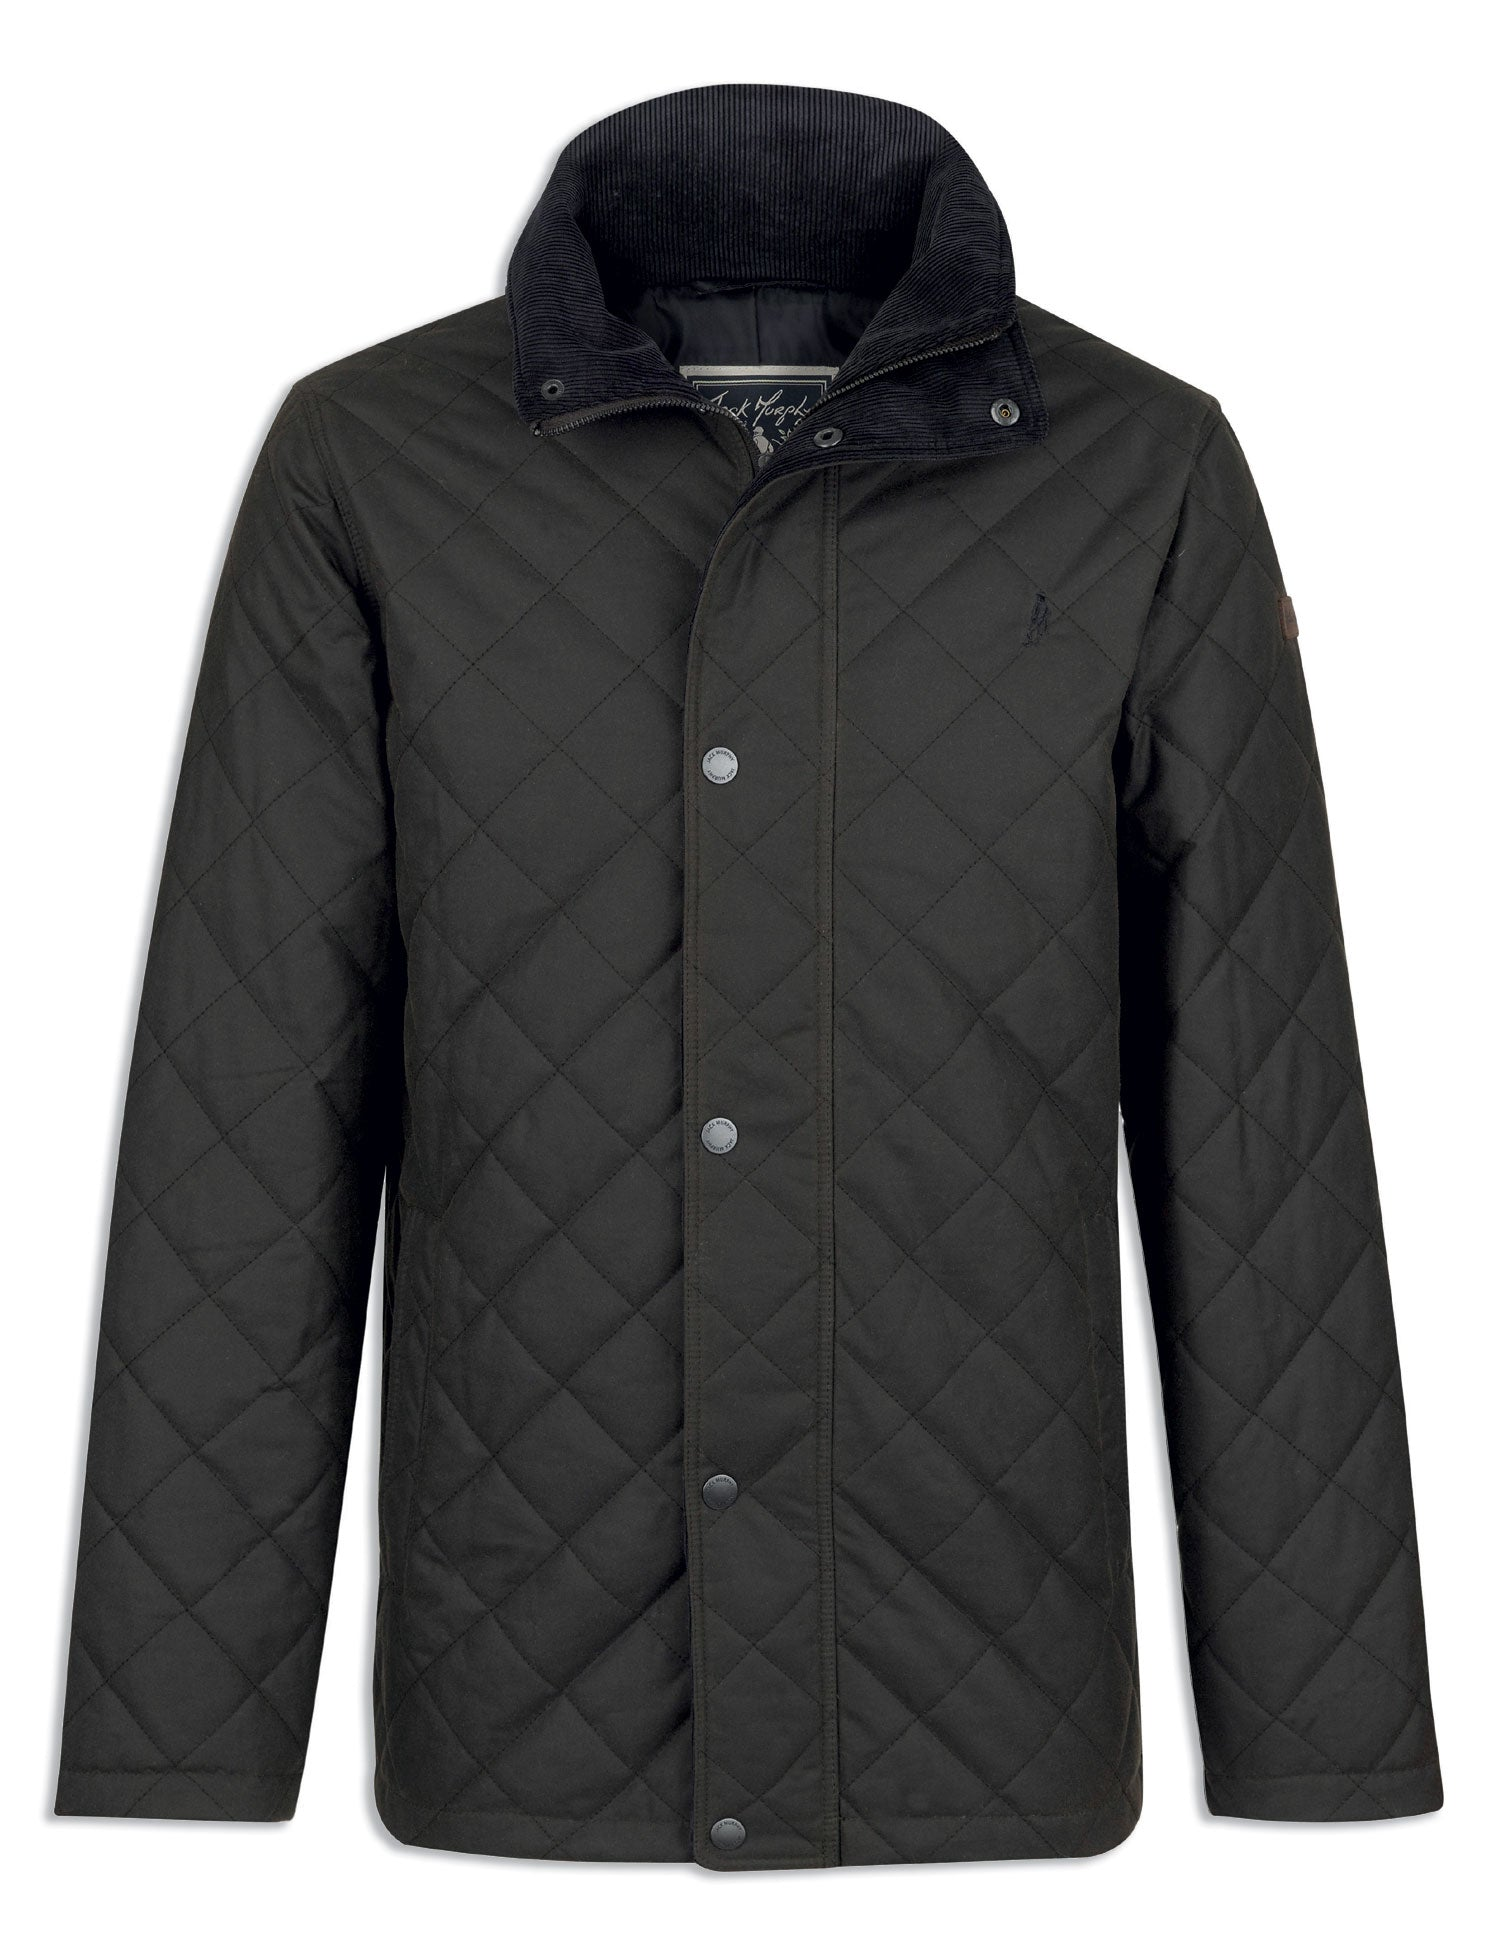 Jack Murphy Dara Men's Quilted Waxed Jacket